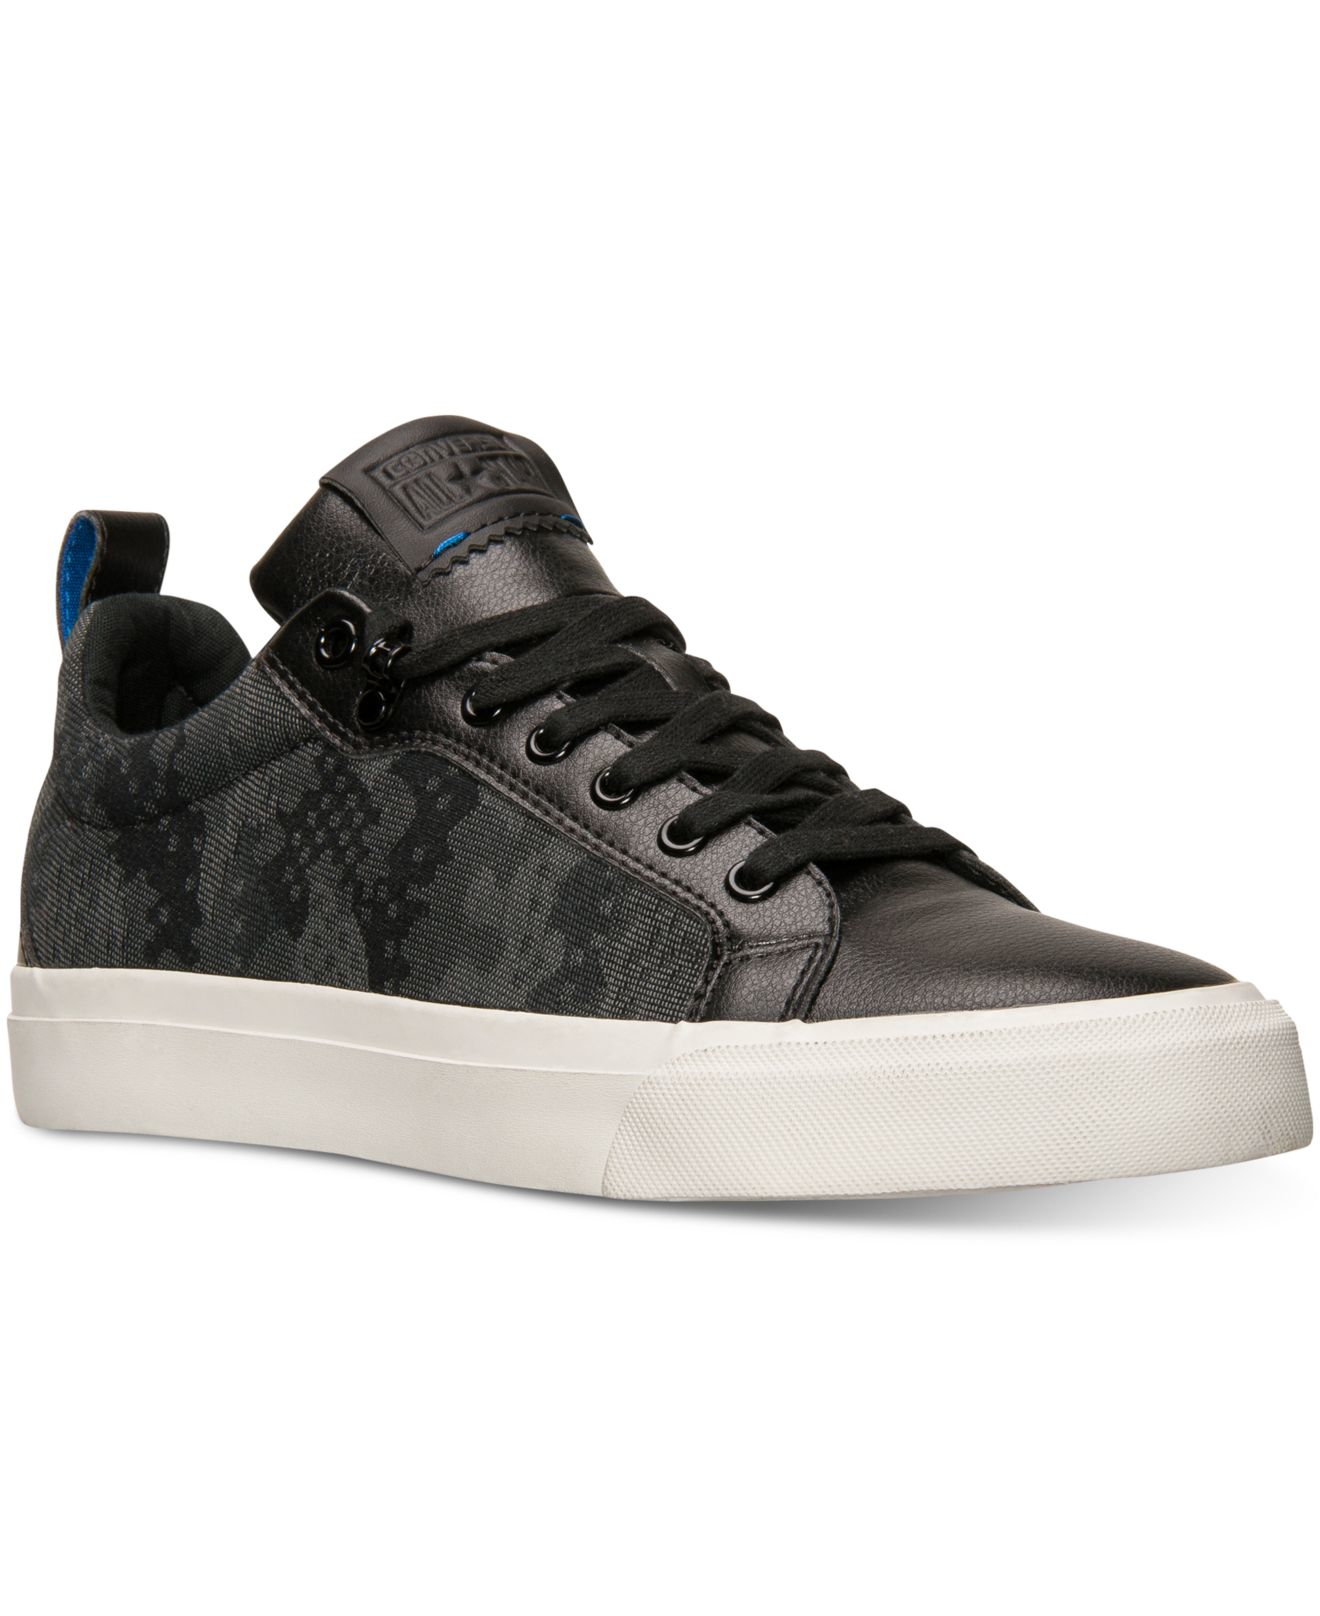 Details about CONVERSE MEN SHOES ALL STAR FULTON CASUAL SNEAKERS BLACK BLUE CAMO LACE UP